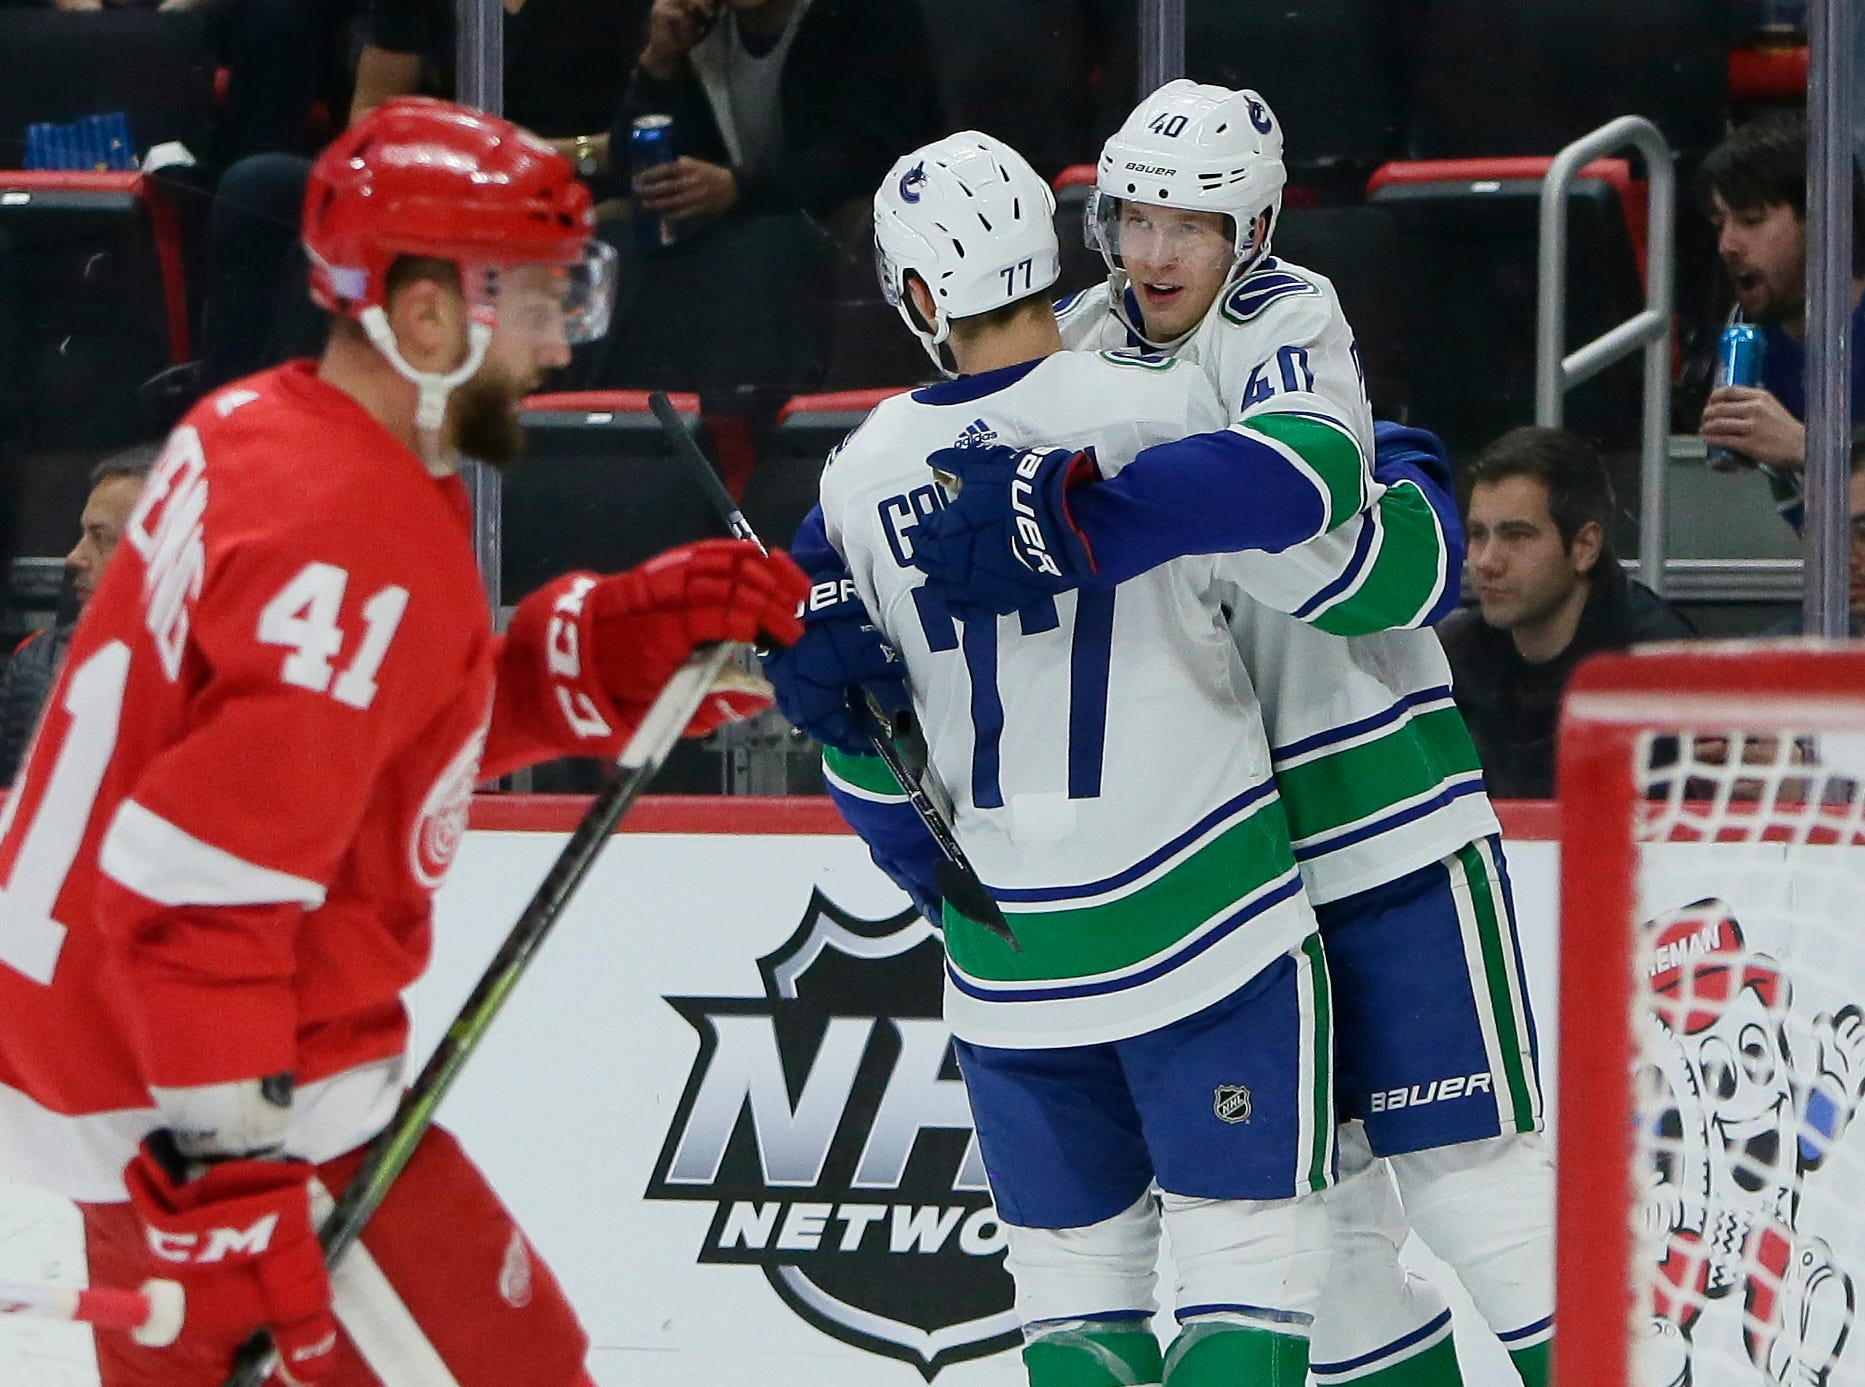 Vancouver Canucks center Elias Pettersson (40), of Sweden, celebrates his first period goal with right wing Nikolay Goldobin (77), of Russia, as Detroit Red Wings center Luke Glendening (41) skates away during an NHL hockey game Tuesday, Nov. 6, 2018, in Detroit.